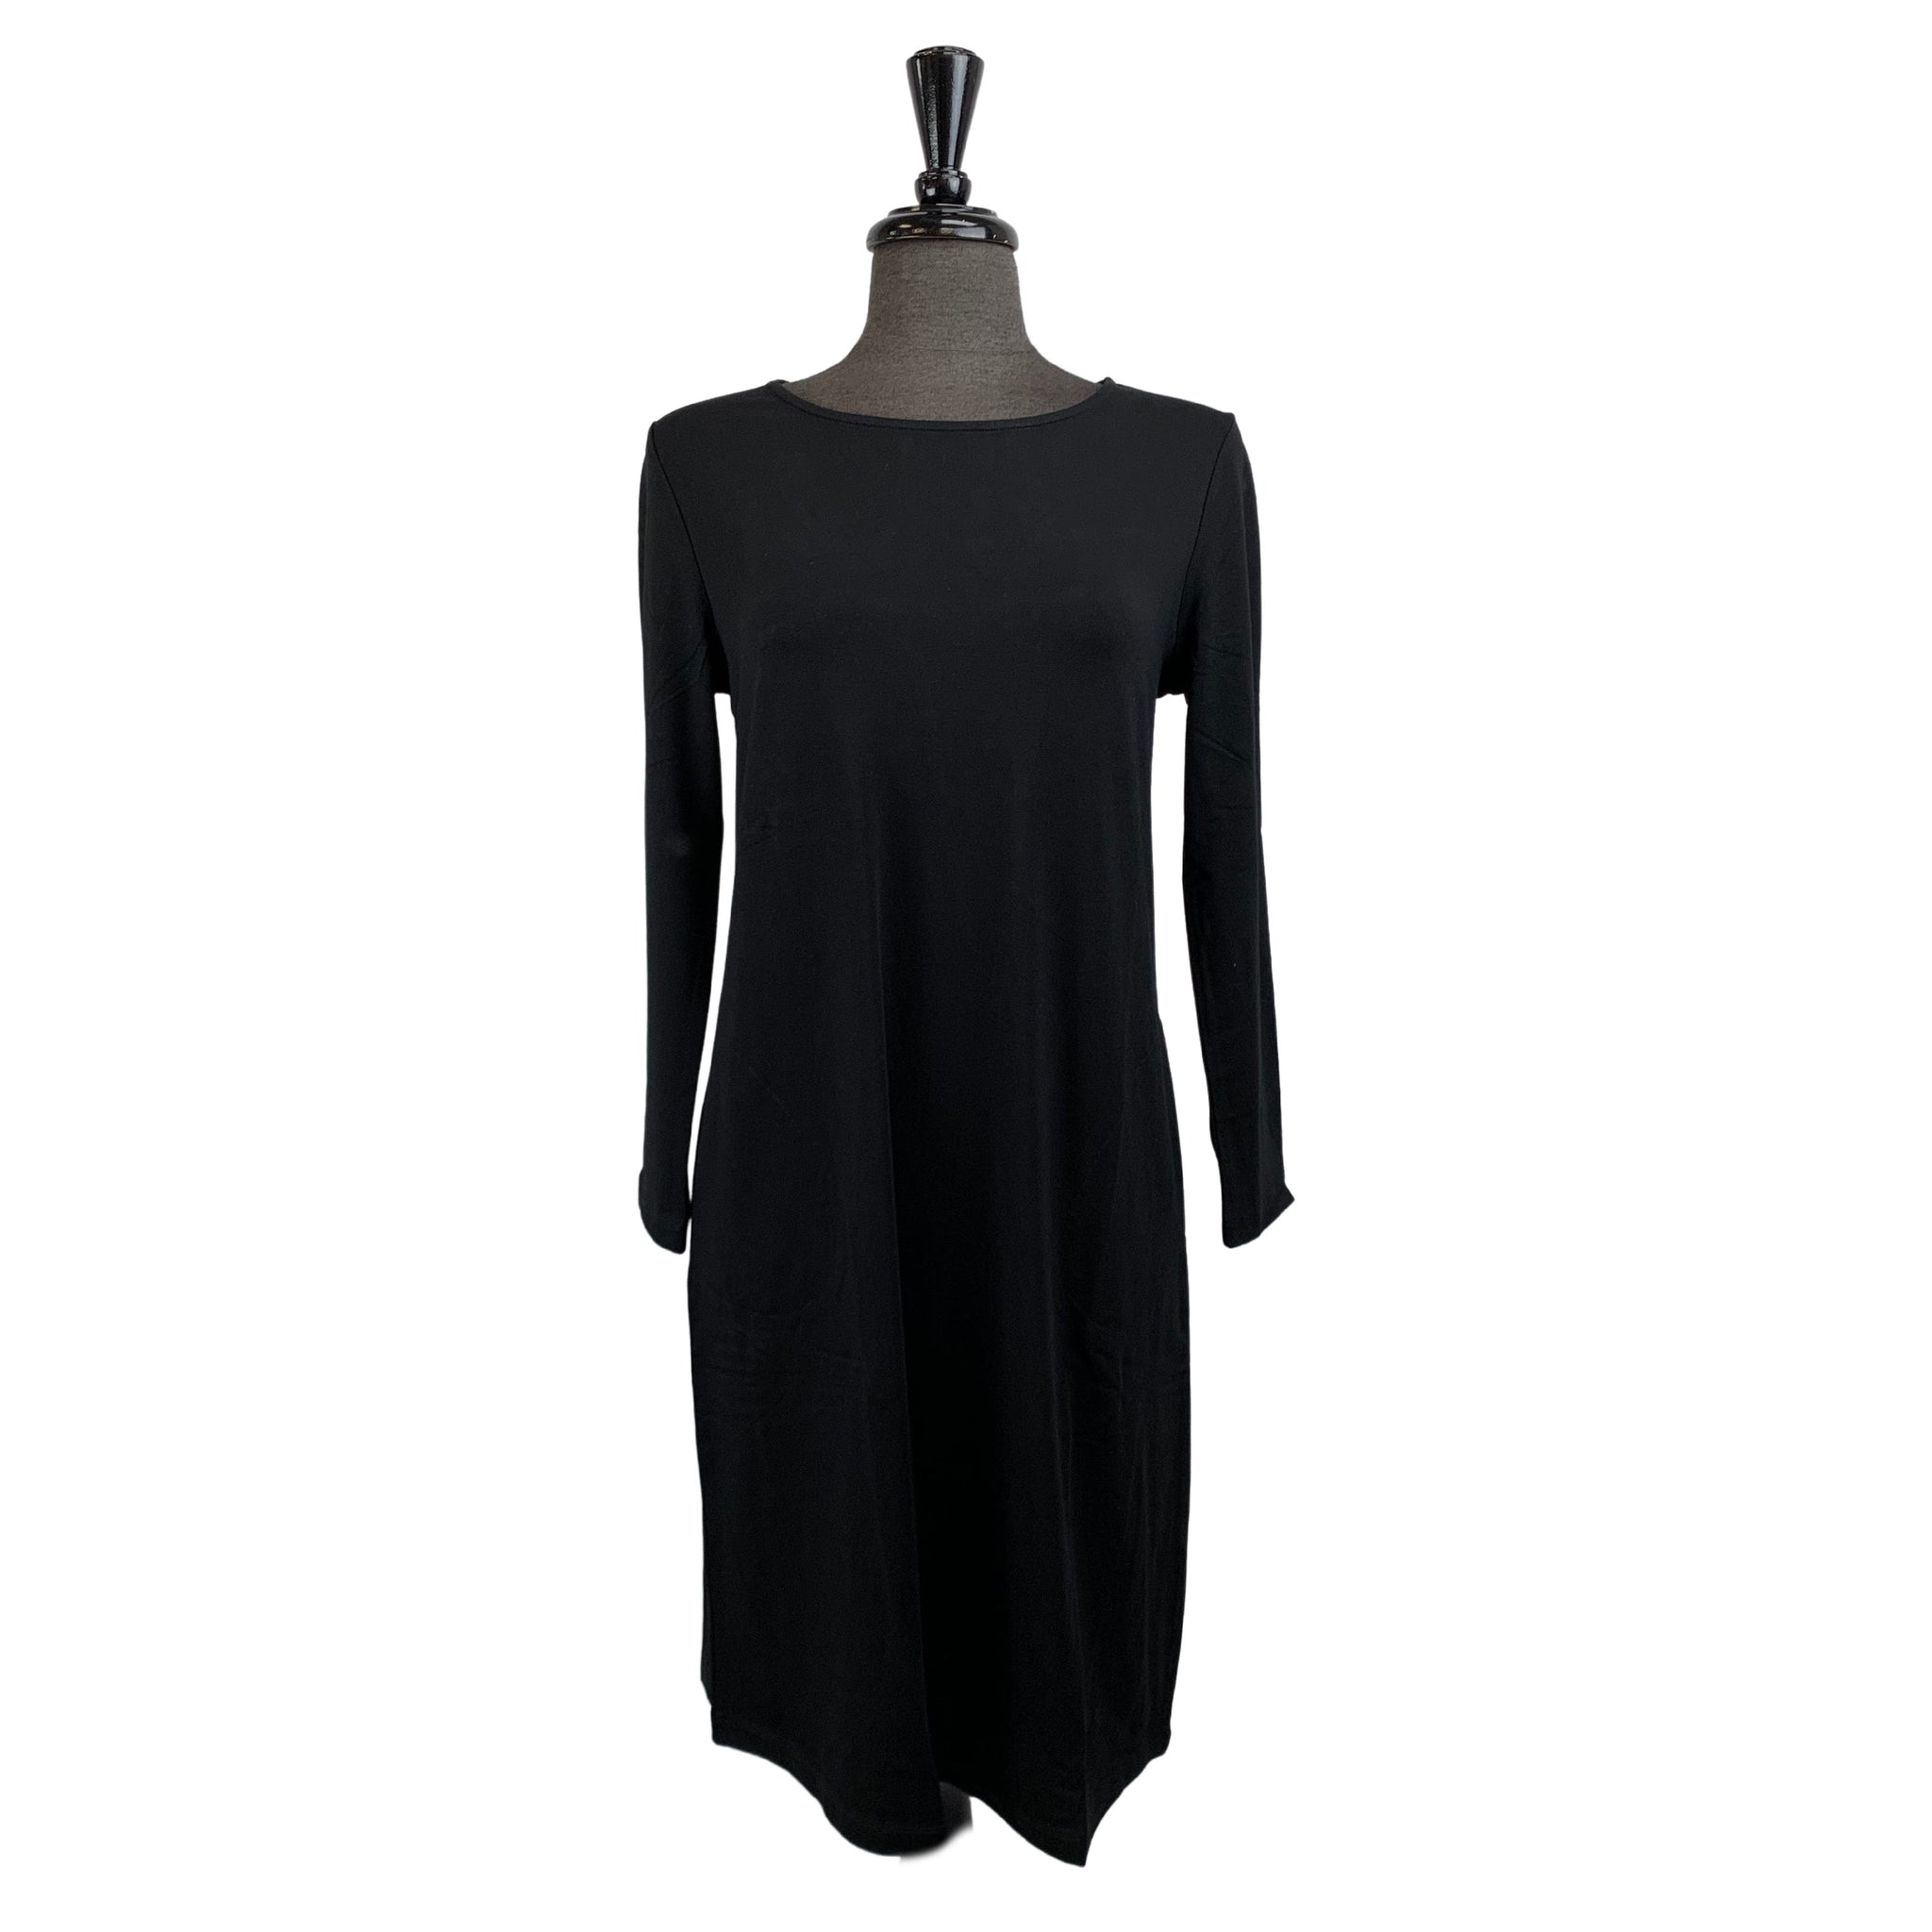 Habitat Black Go To Dress - Chic Thrills